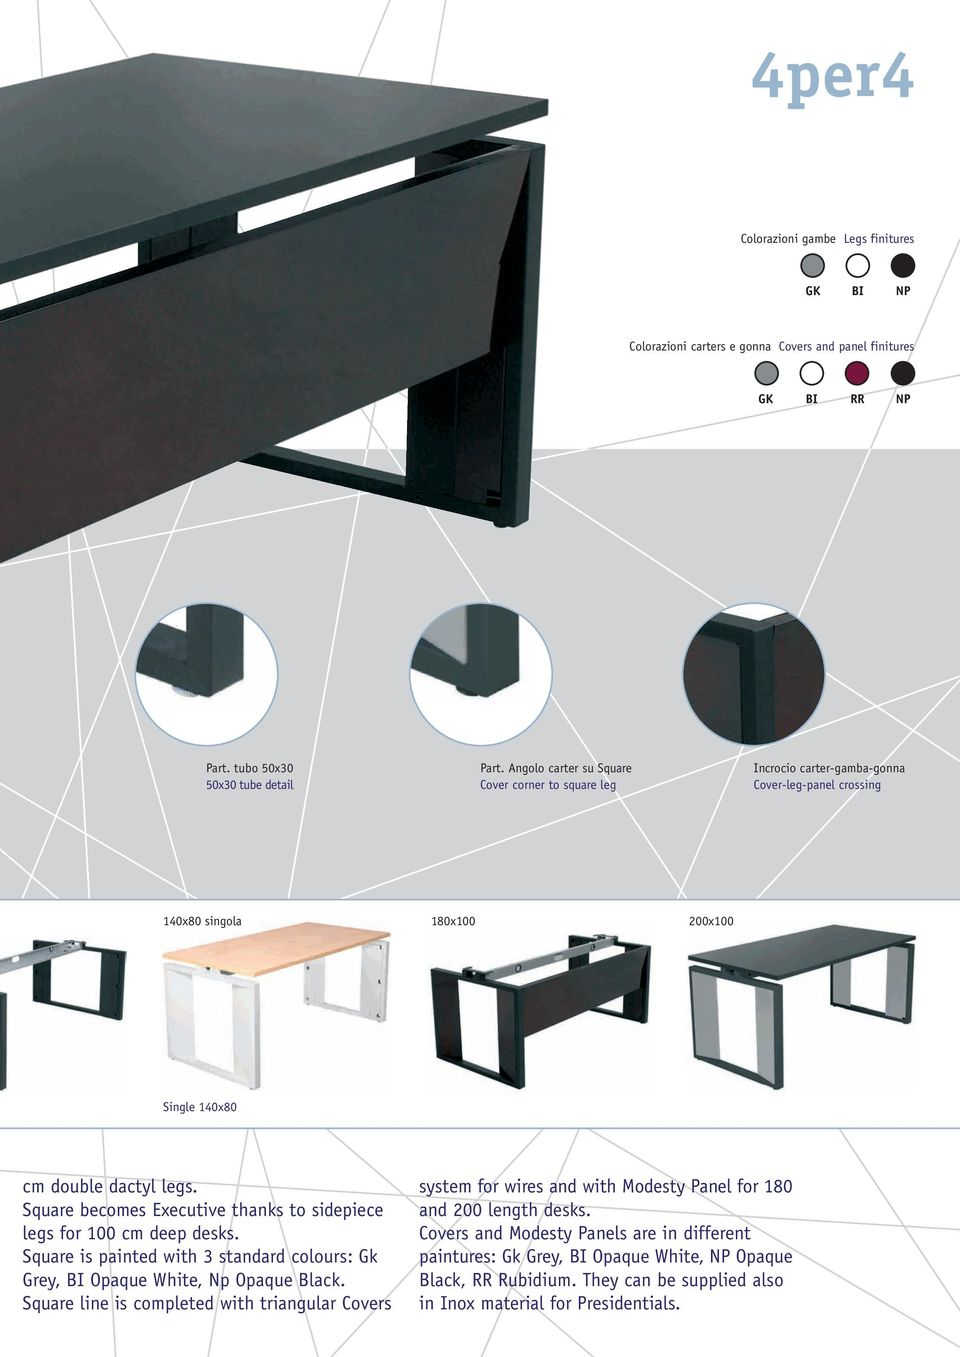 Square becomes Executive thanks to sidepiece legs for 100 cm deep desks. Square is painted with 3 standard colours: Gk Grey, BI Opaque White, Np Opaque Black.